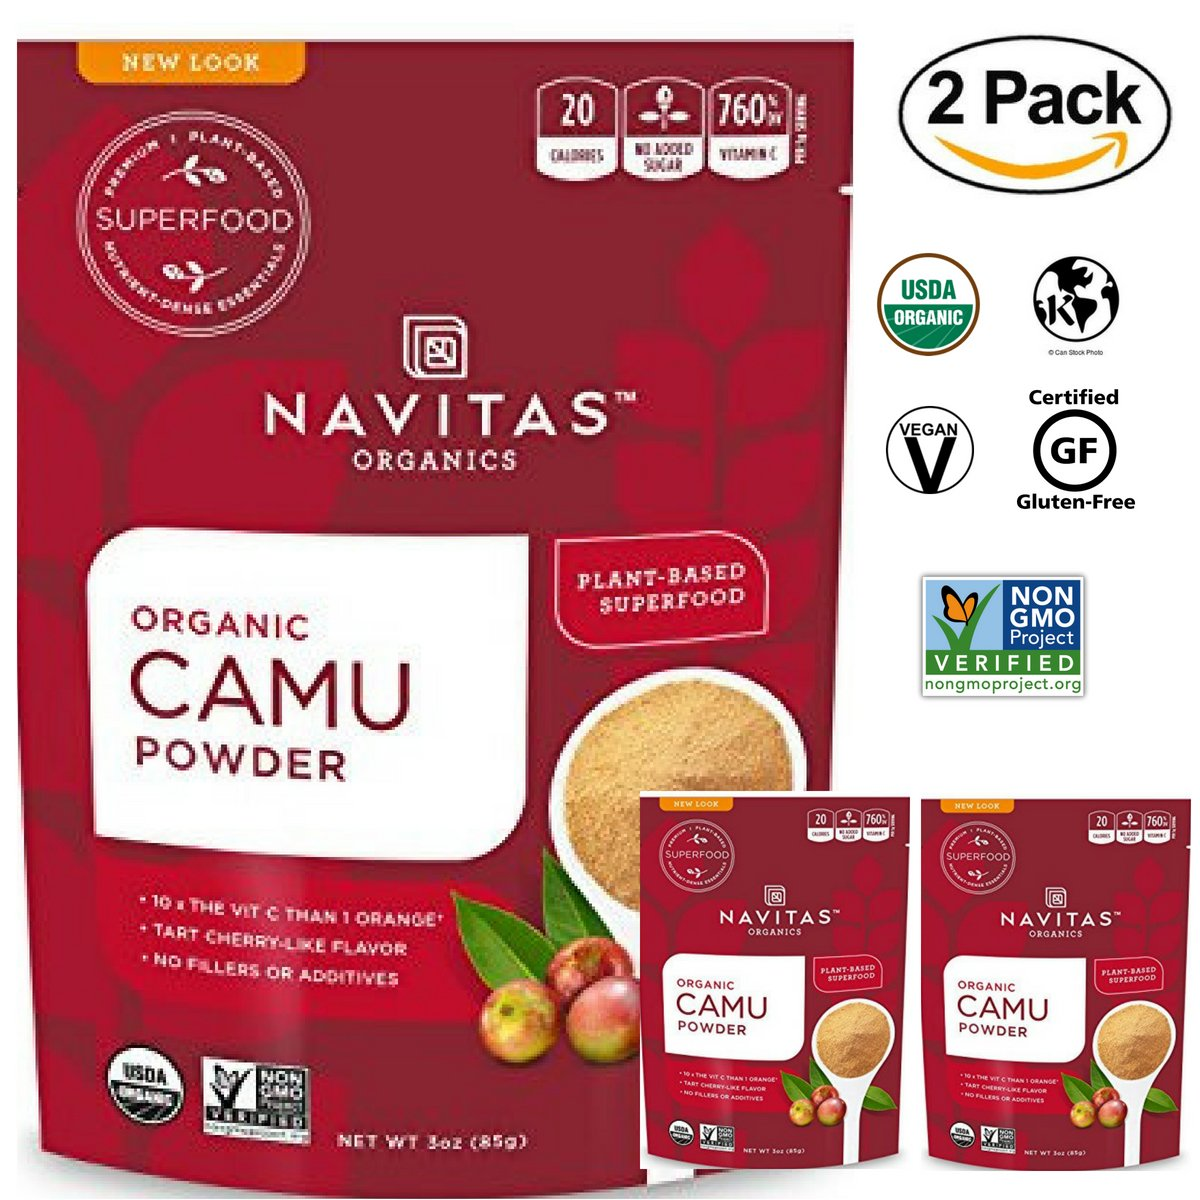 Navitas Organics Raw Camu Camu Powder, 3 oz. Bags (Pack of 2) - Superfood, USDA Organic, Non-GMO, Gluten-Free,Vegan, kosher